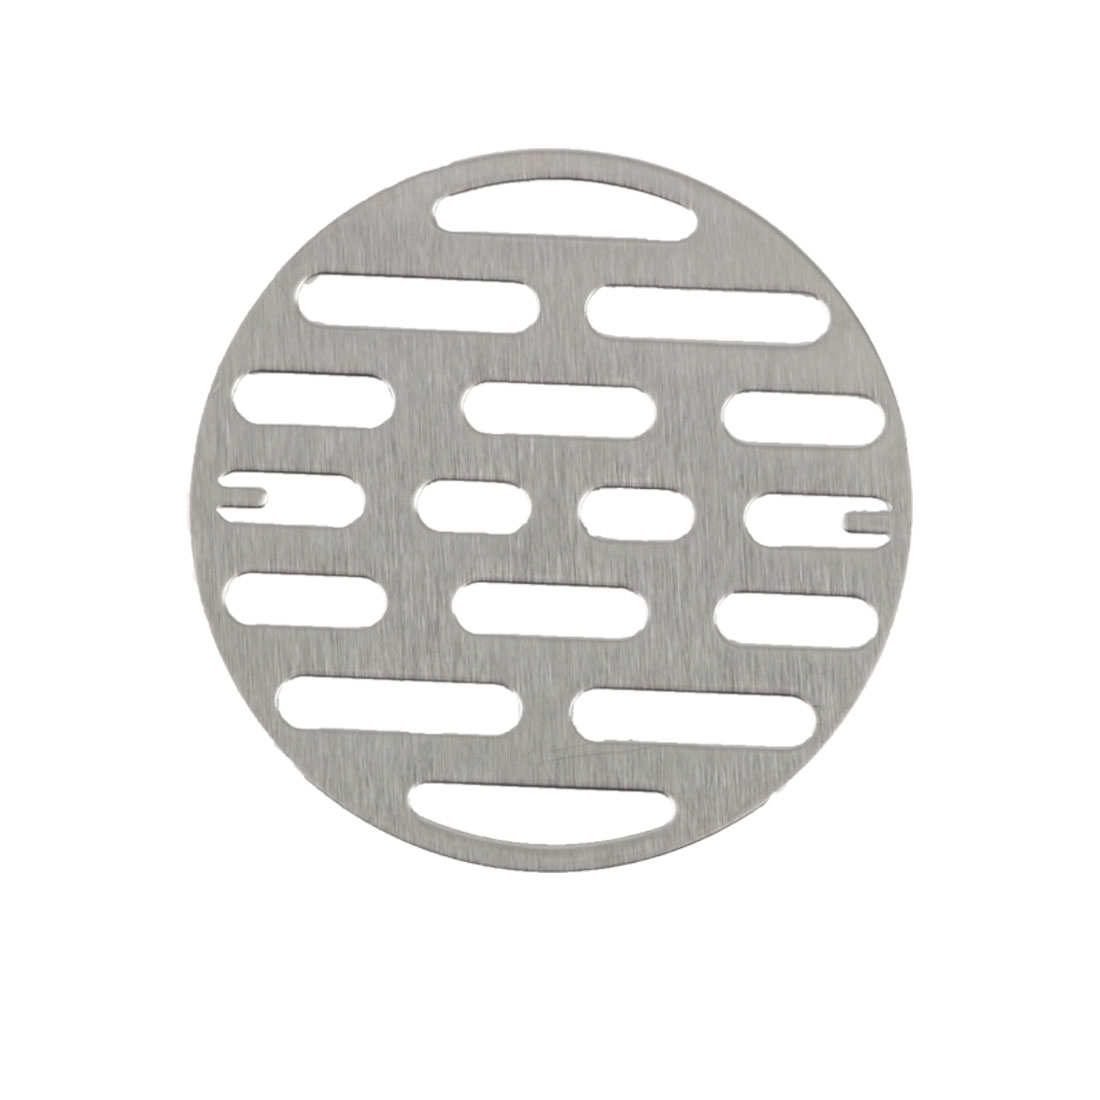 """3.19"""" Snap-in Floor Drain Cover Hair Catcher Sink Filters Stopper Kitchen"""